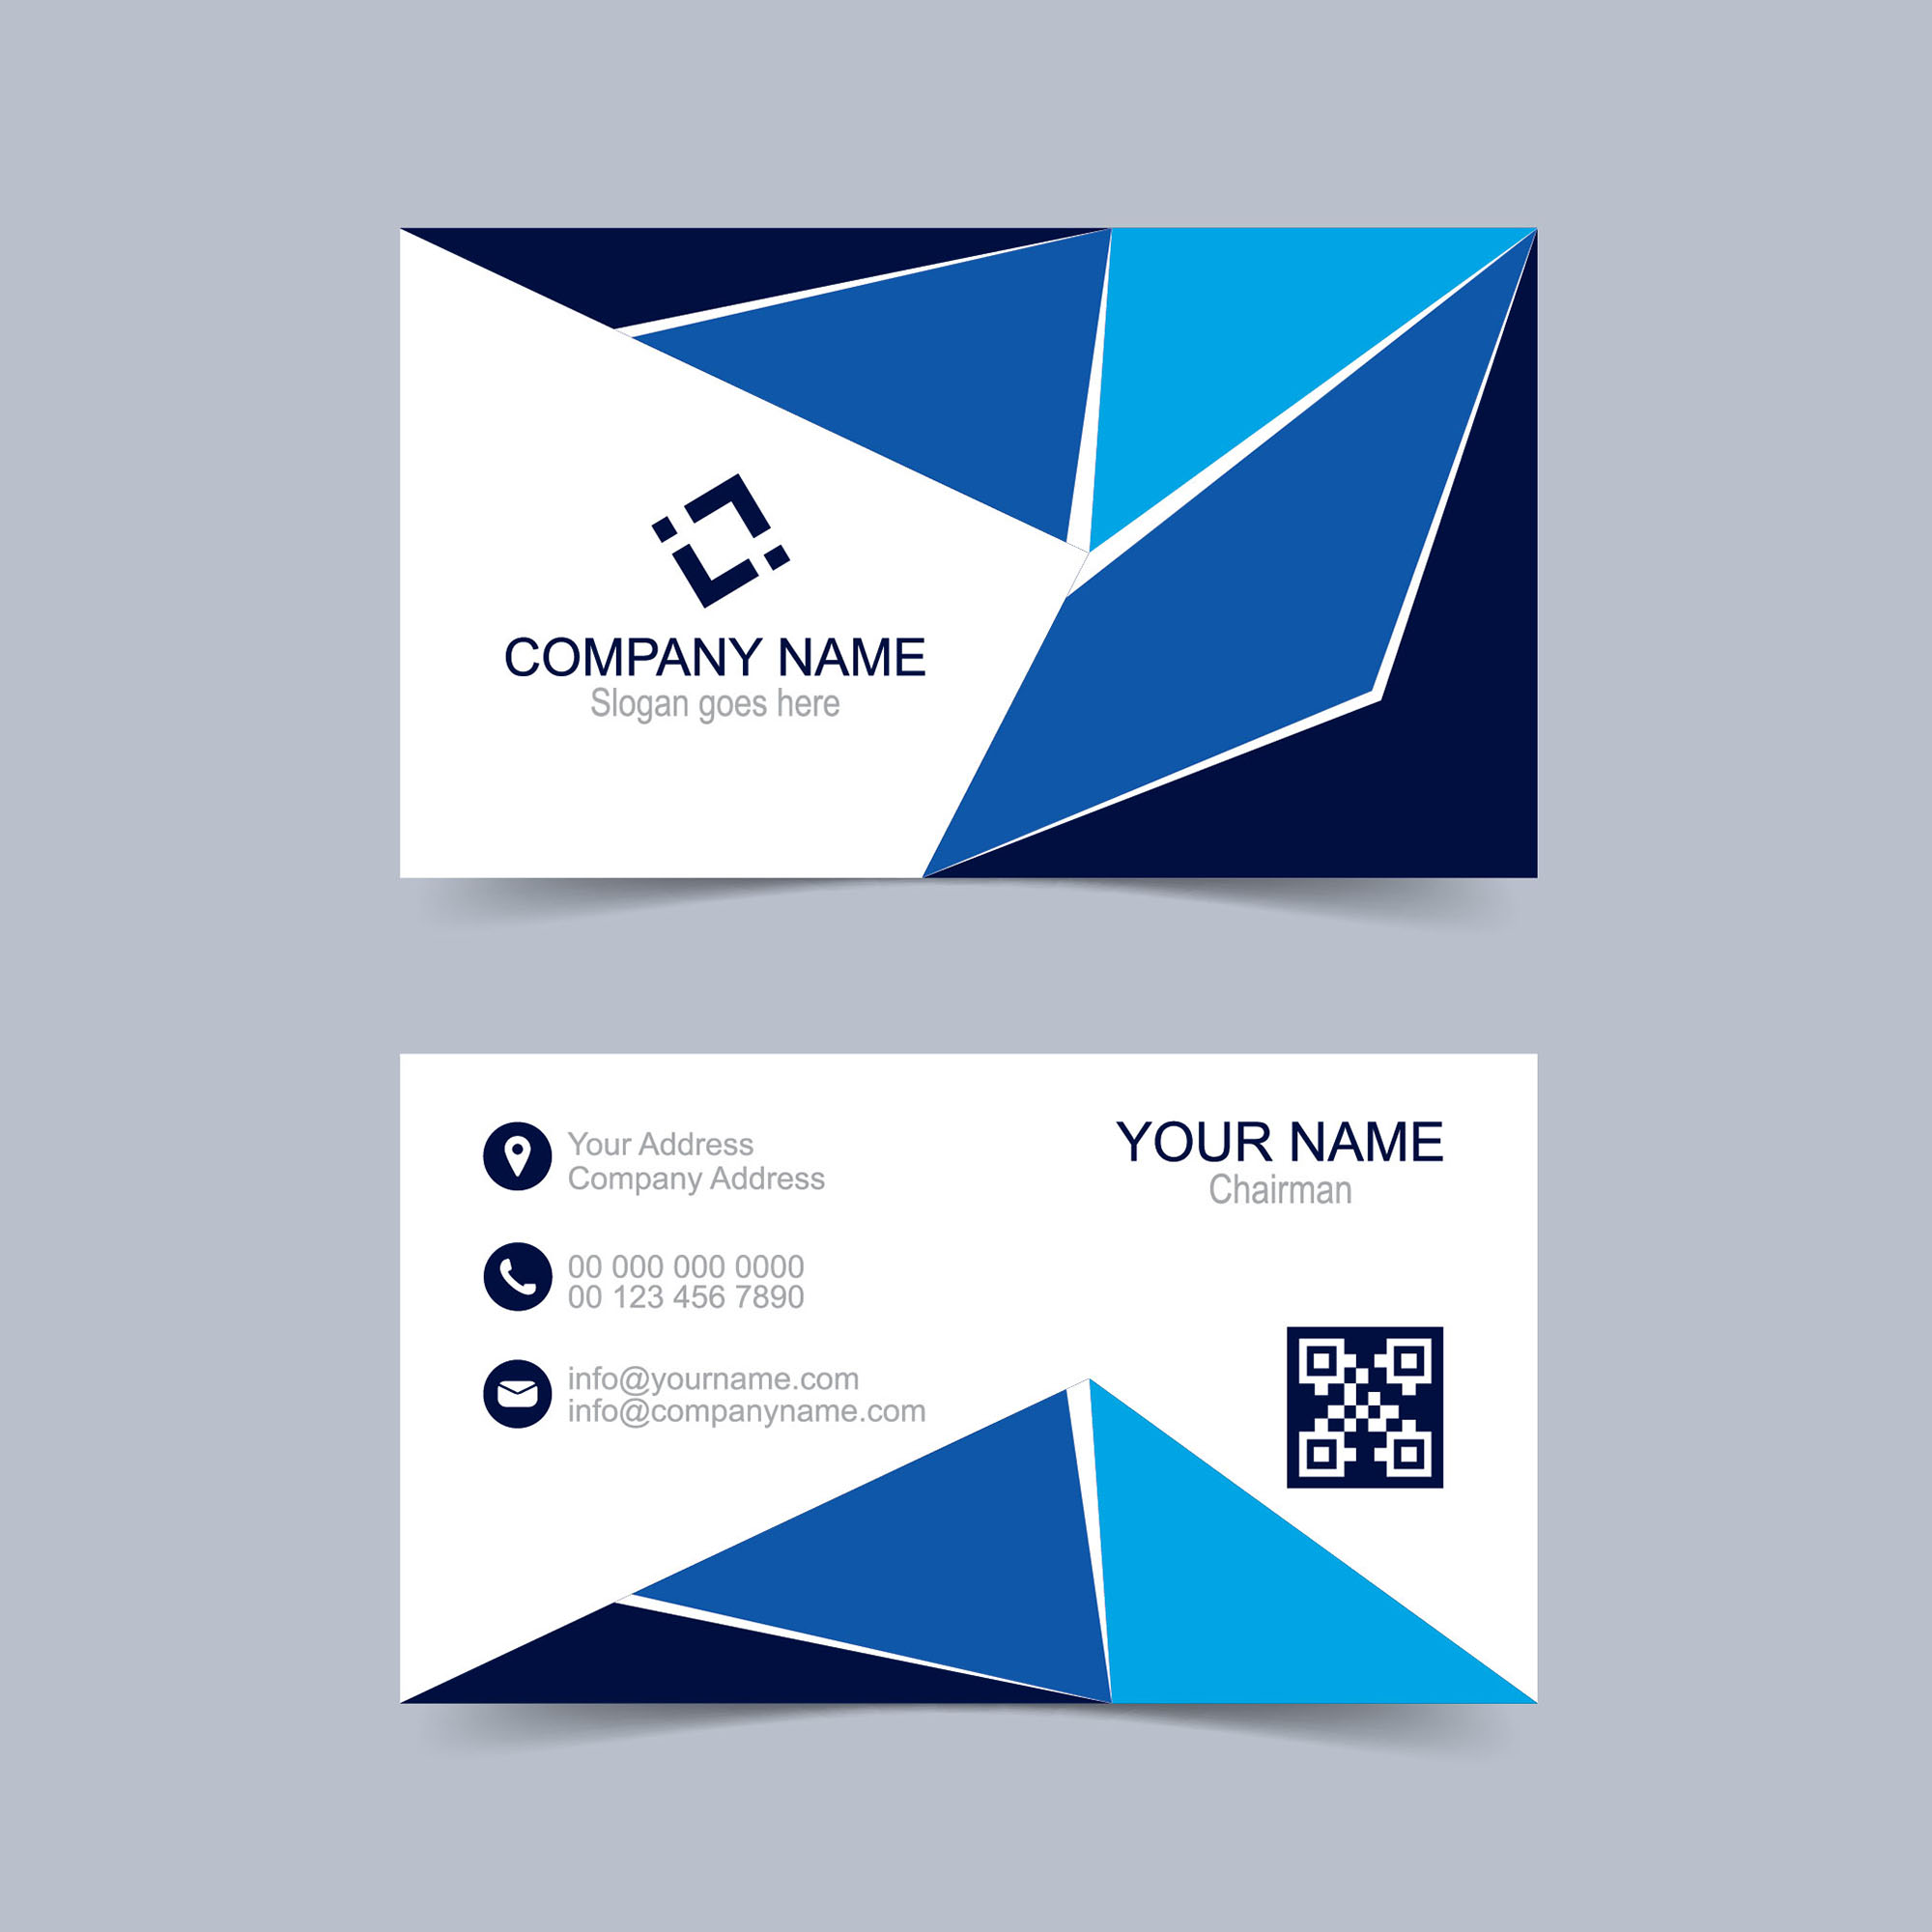 Creative business card design free download wisxi business card business cards business card design business card template design templates fbccfo